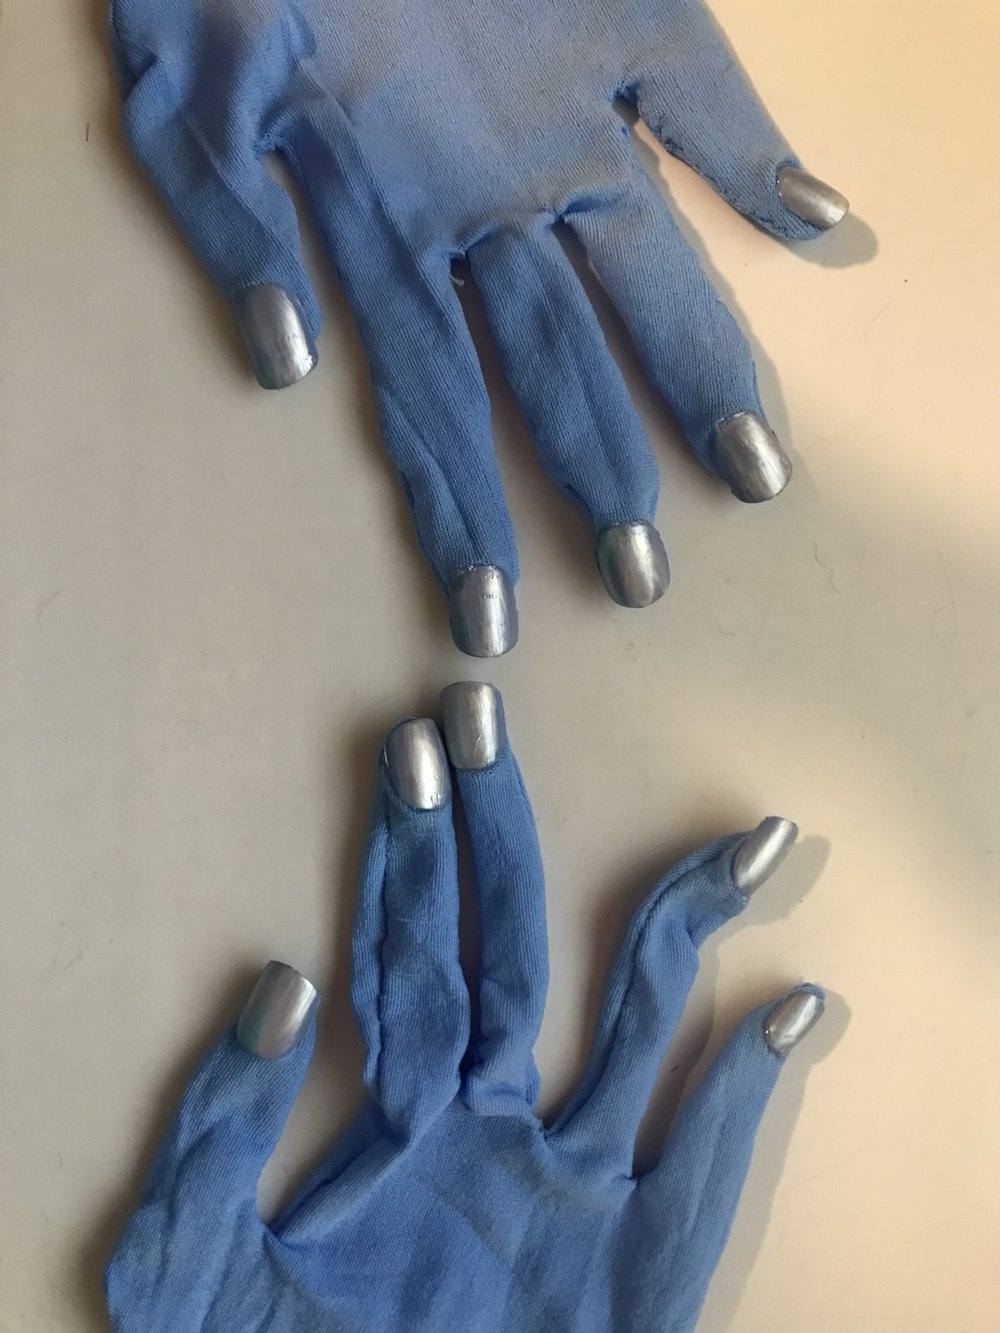 I painted some fake nails and glued them onto the gloves to make it more realistic.